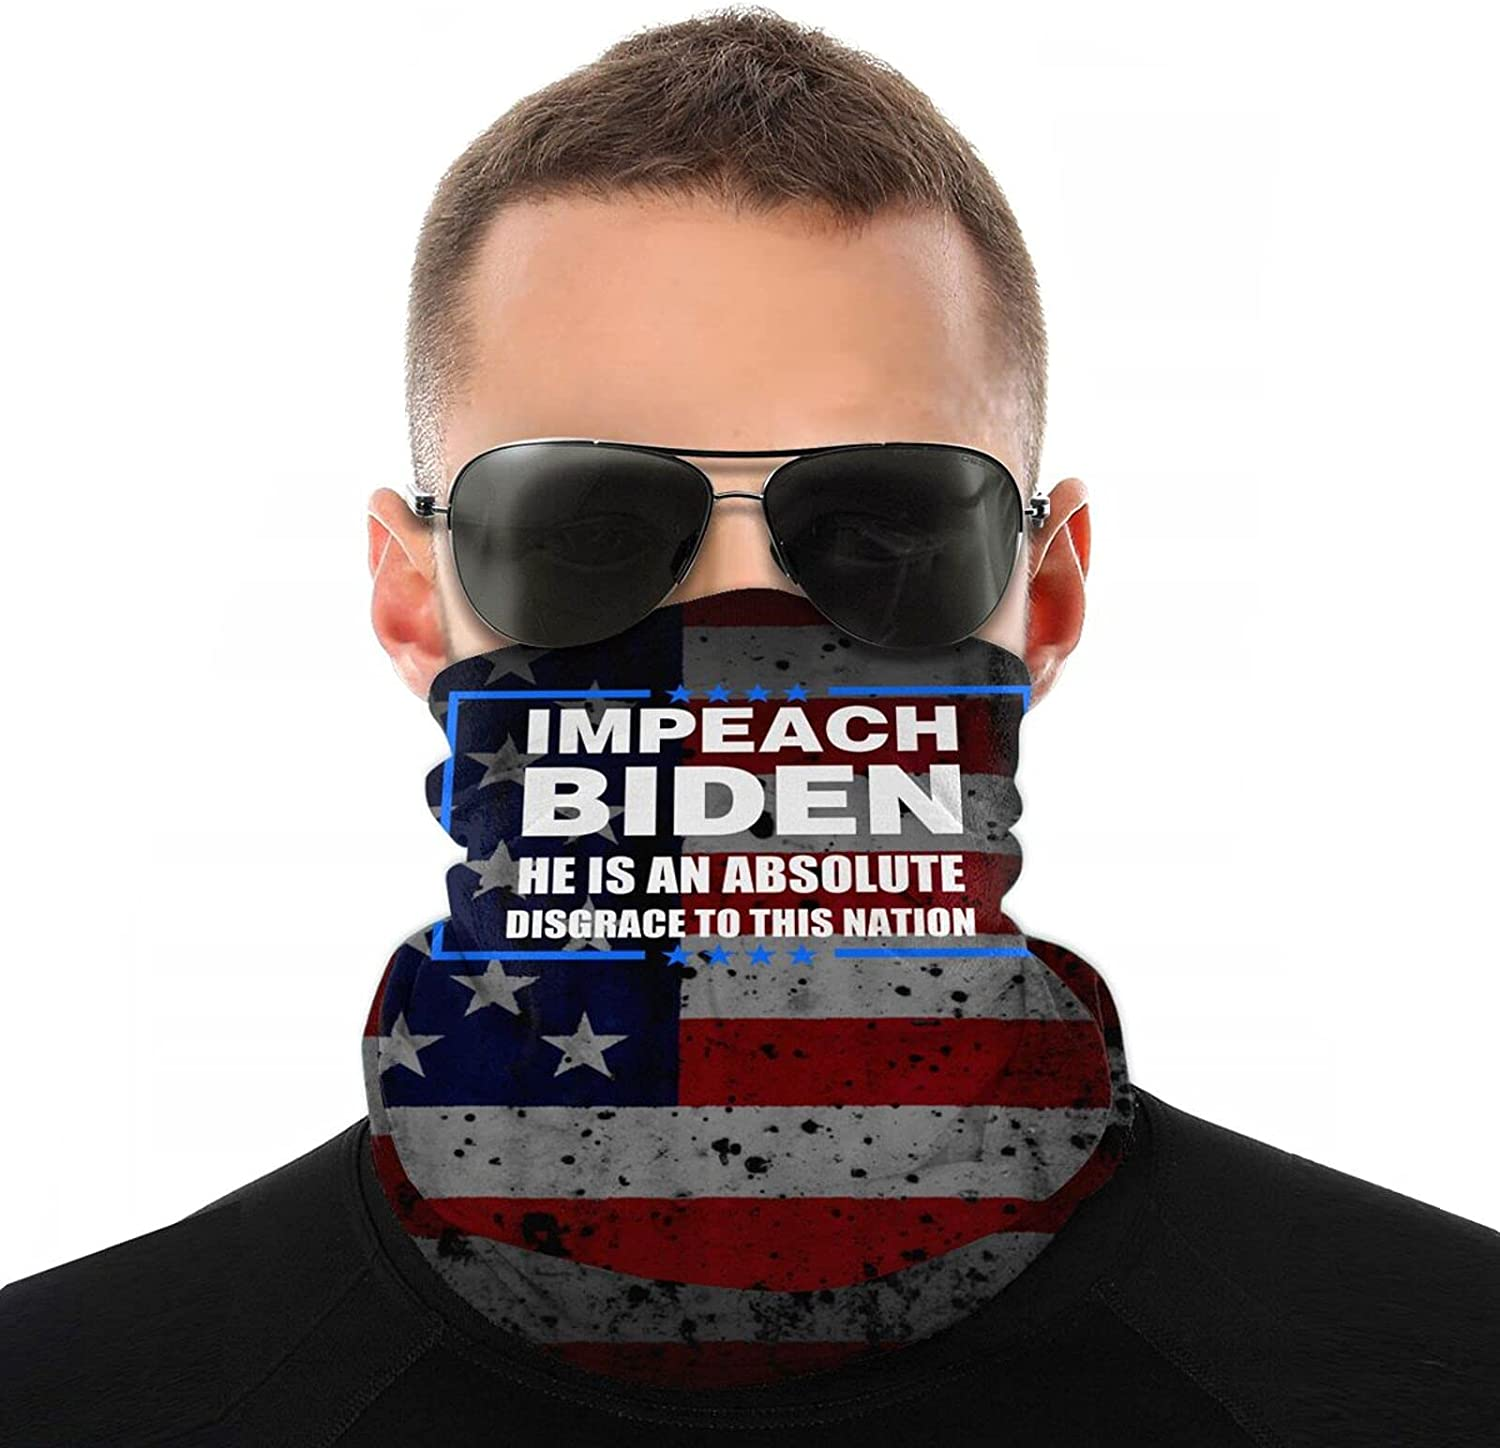 Impeach Biden He is an Absolute Disgrace to This Nation Face Cover Mouth Mask Neck Warm Multi Function Balaclava for Outdoor White